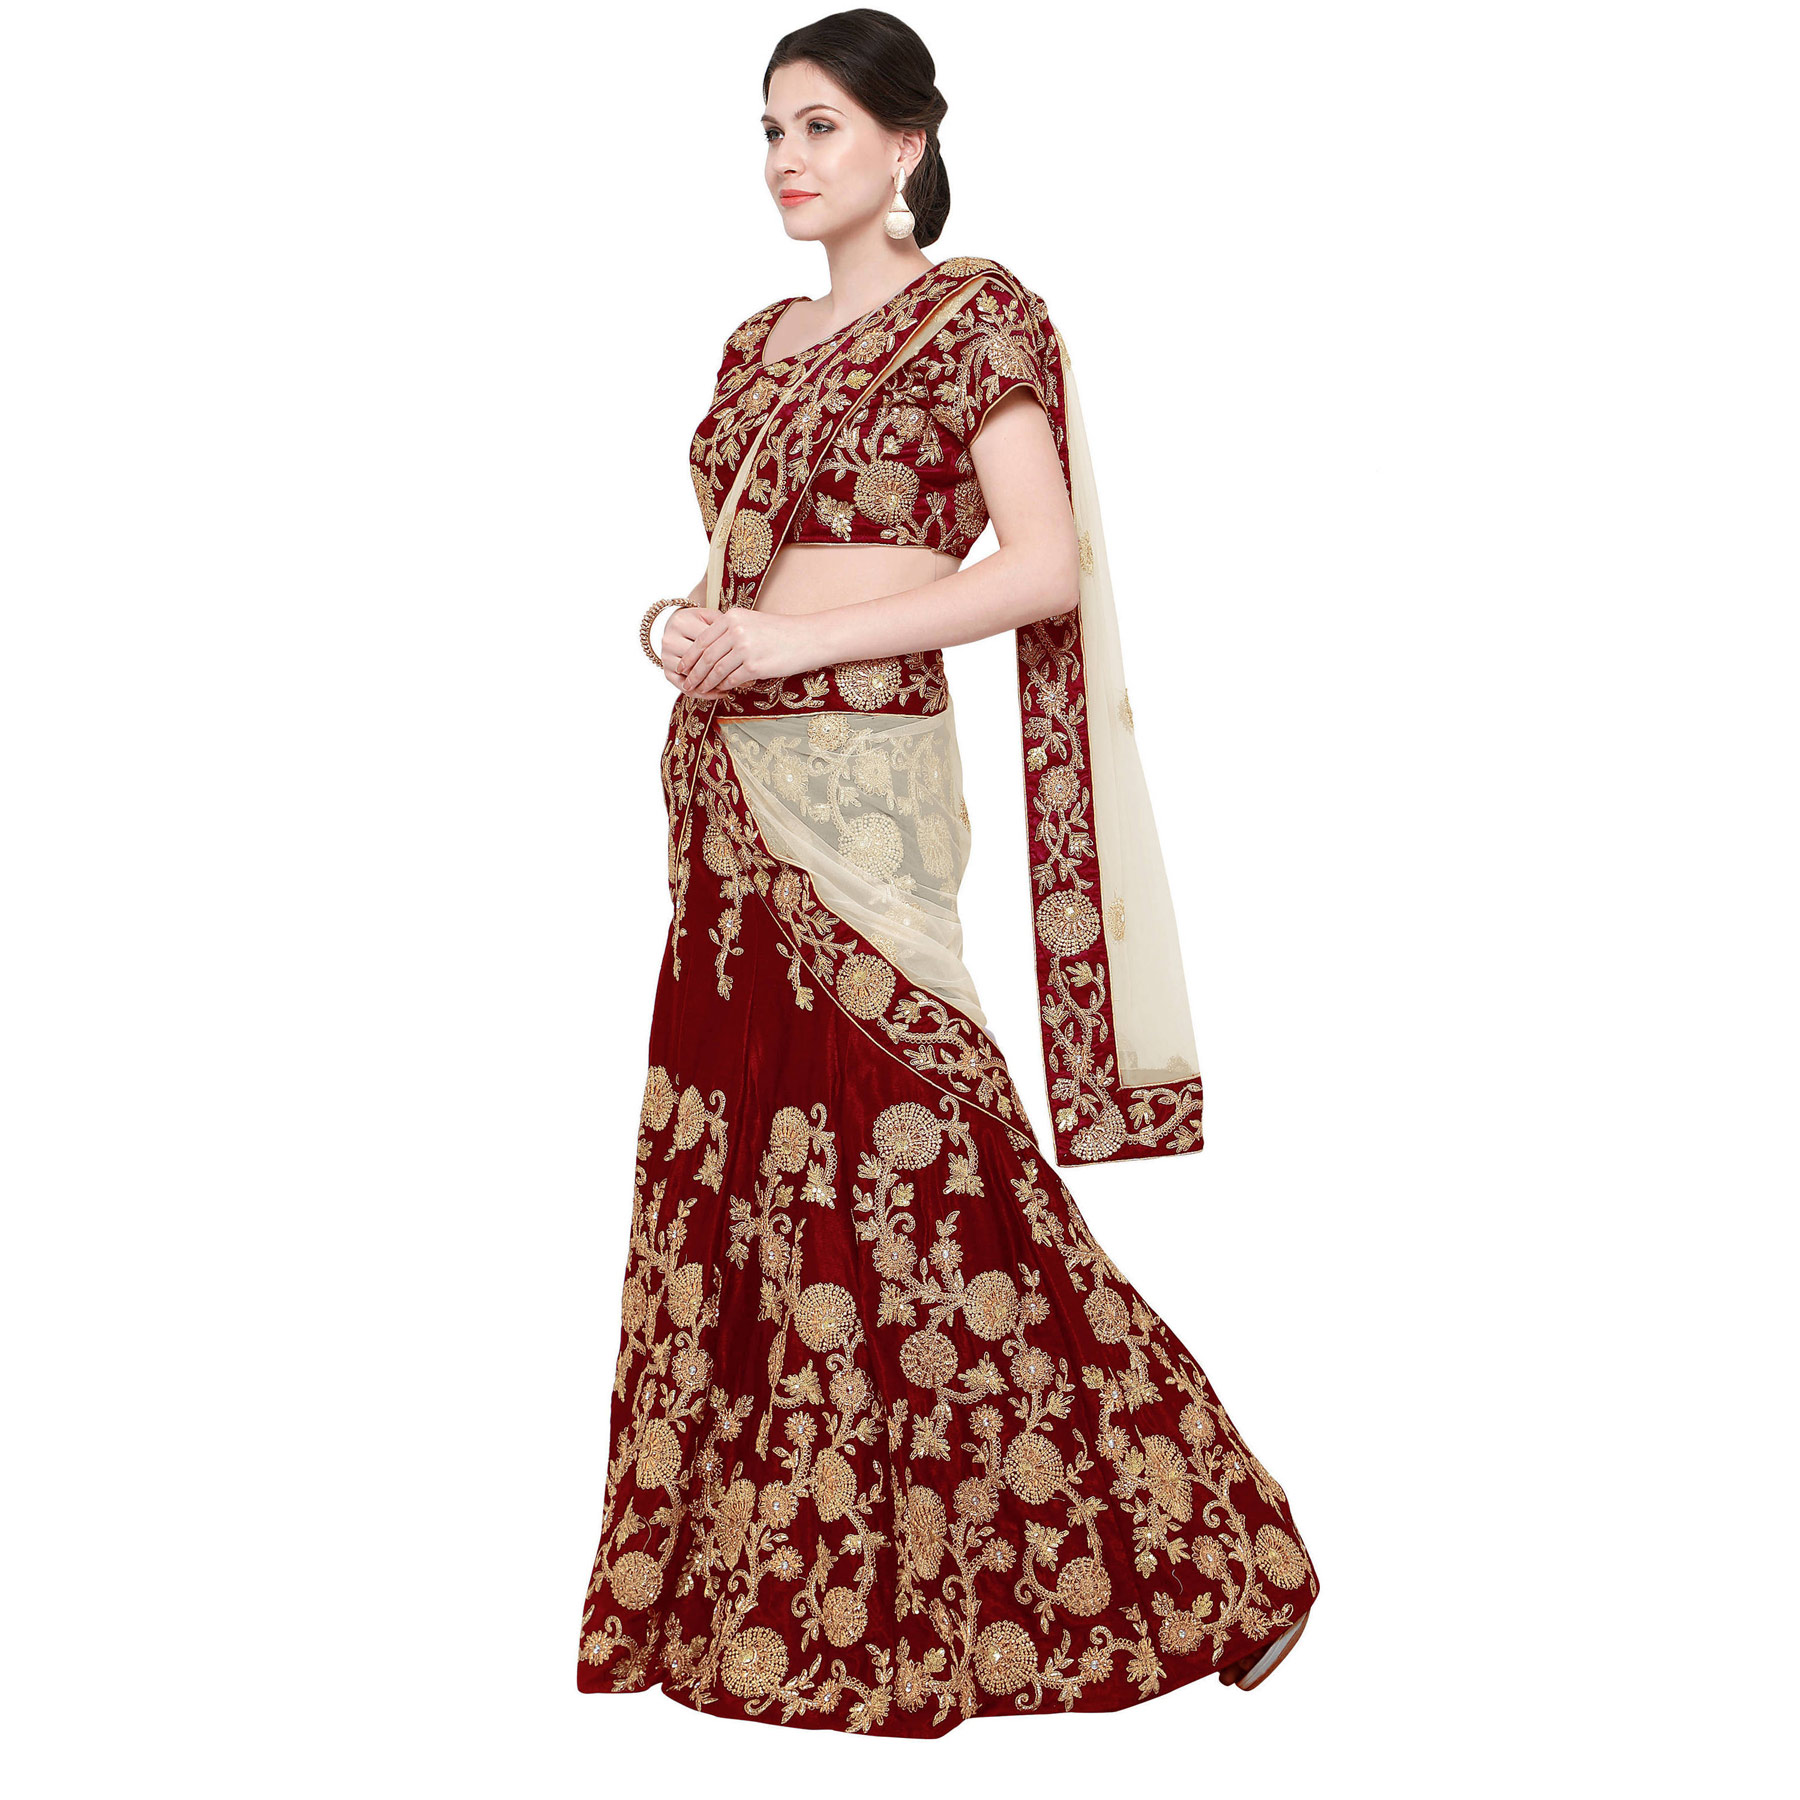 Demanding Maroon Colored Partywear Designer Embroidered Velvet Lehenga Choli